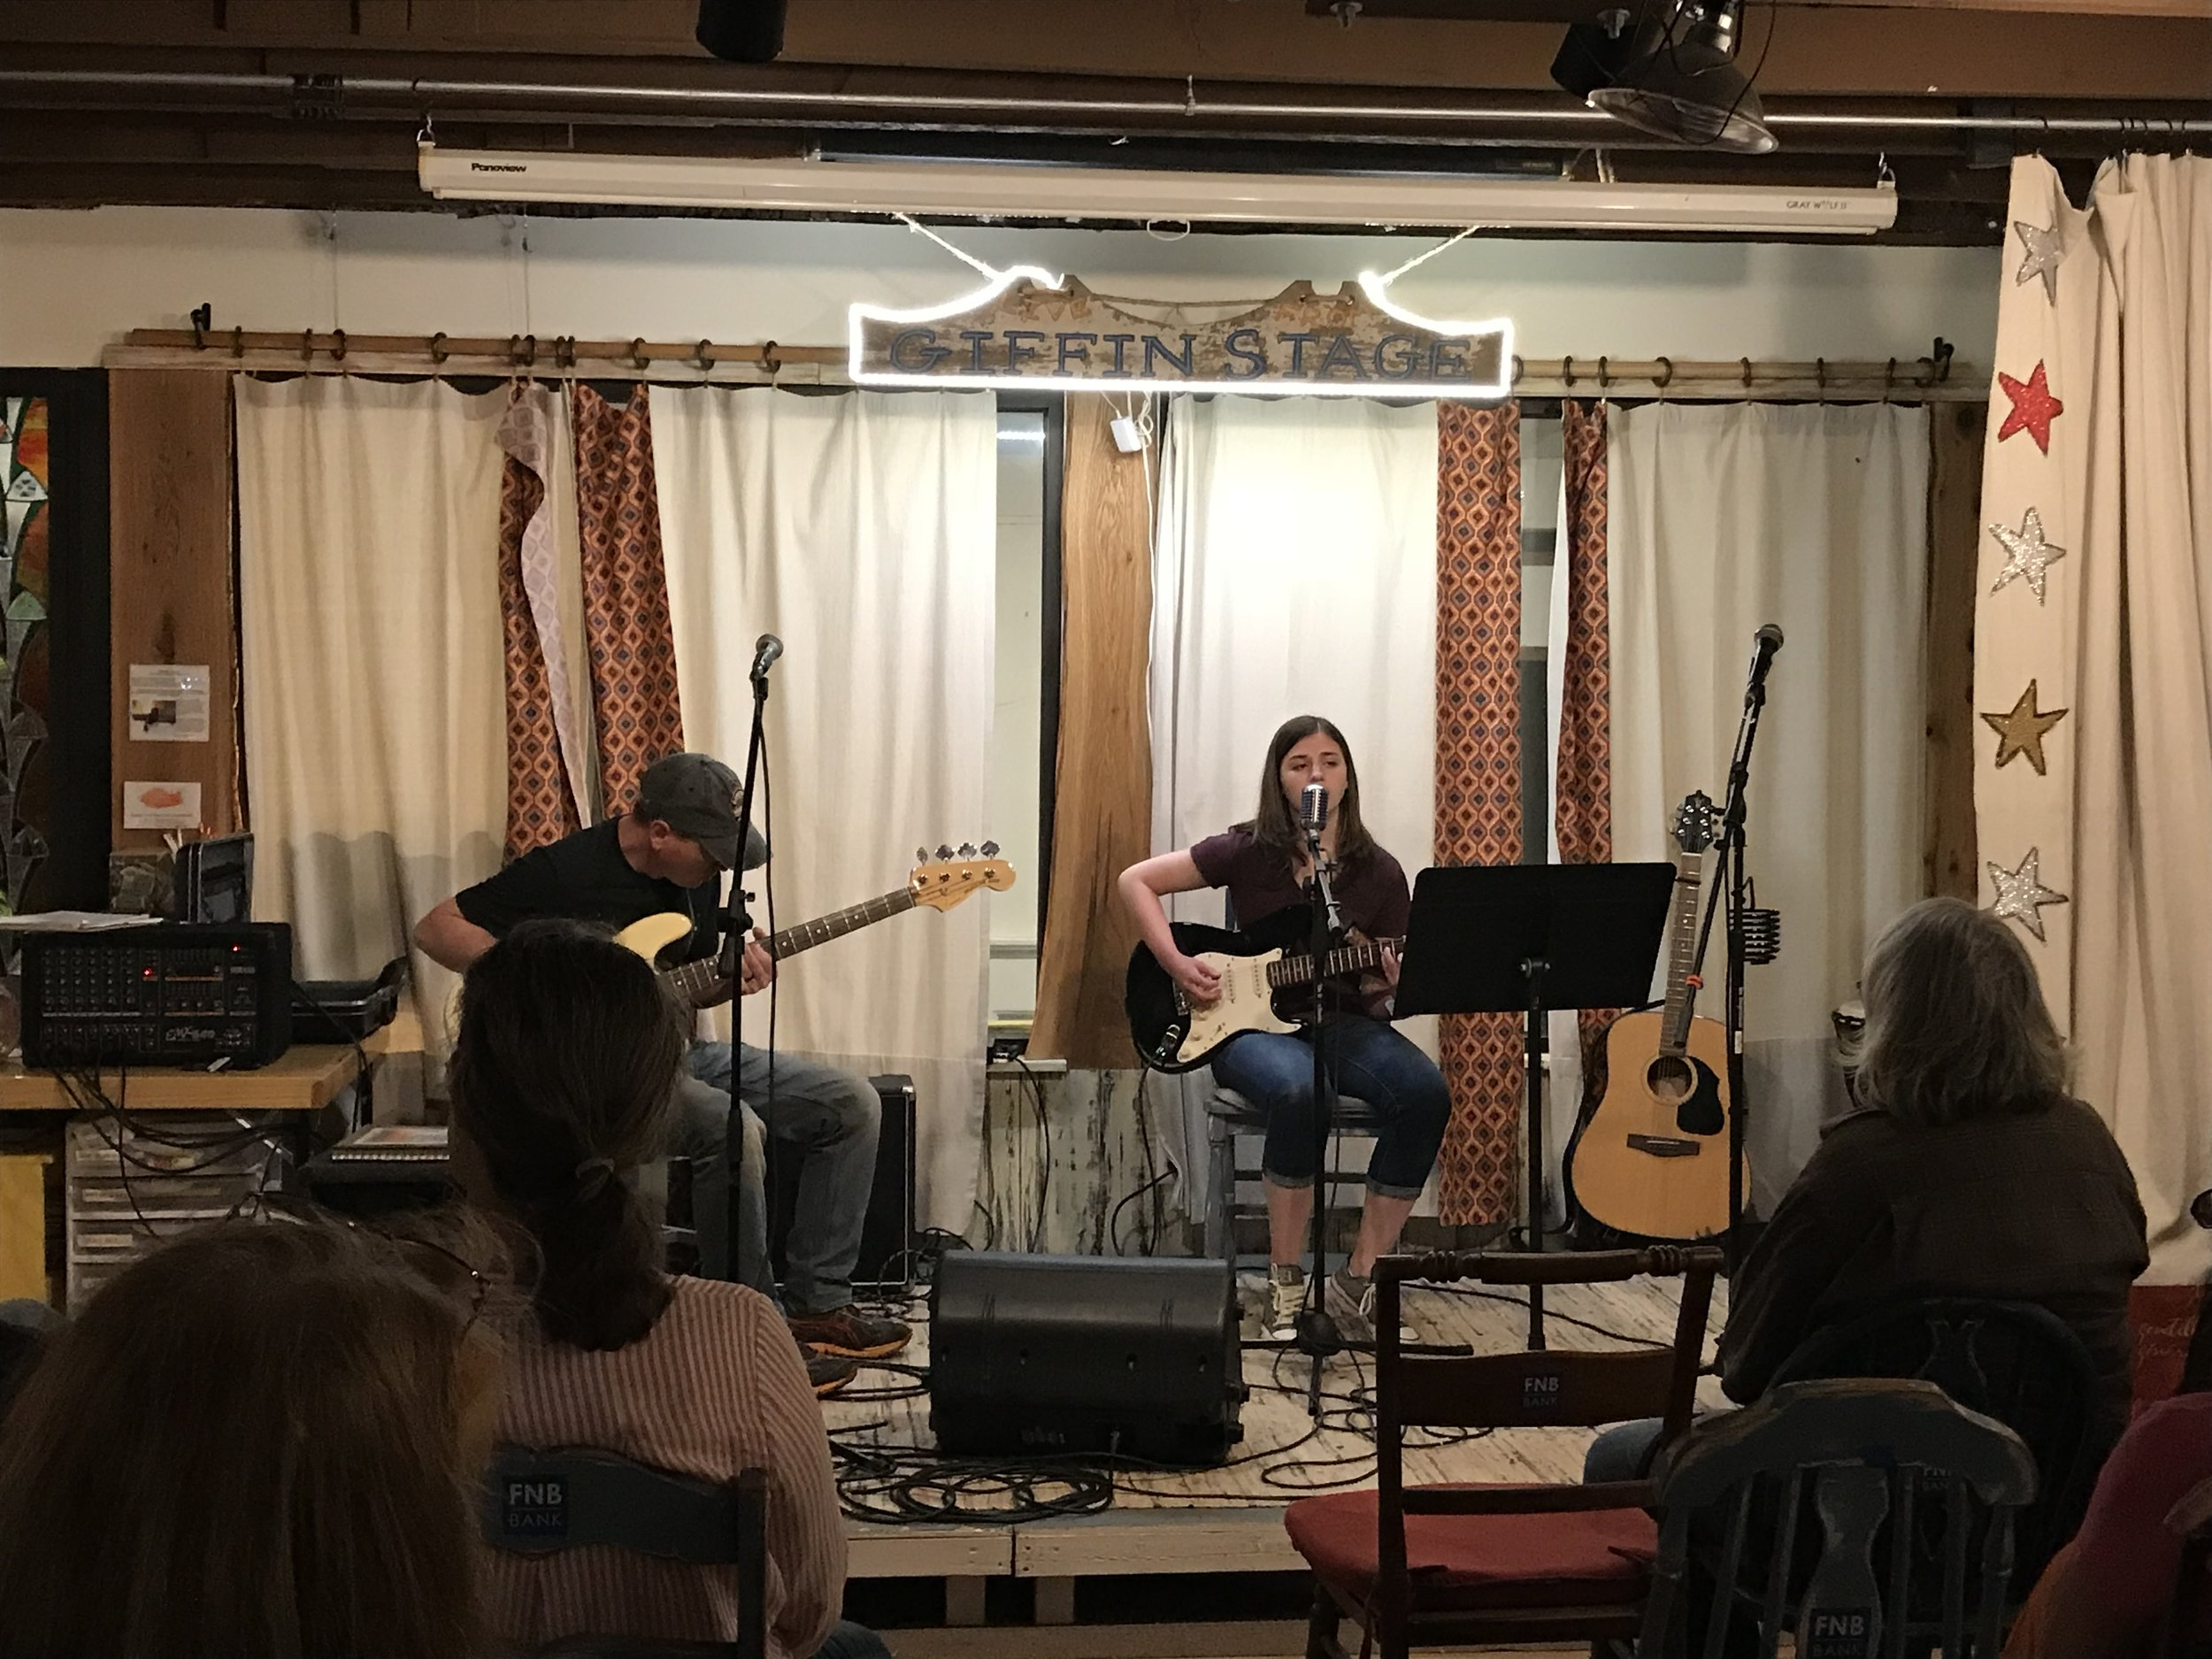 """Here's more about our high-school performer, a talented musician who has played at Open Mic Night:  """"I'm Olivia Chisholm, from Capon Bridge, WV and I'm 17 years old. I perform with my dad, who has played bass for 30+ years. I play guitar with him, as well as for my school jazz band. My musical style ranges from classic rock, alternative rock, and metal. Although I have several influences, the ones that come to mind are Stevie Nicks, Led Zeppelin, Red Hot Chili Peppers, and Mark Tremonti."""""""